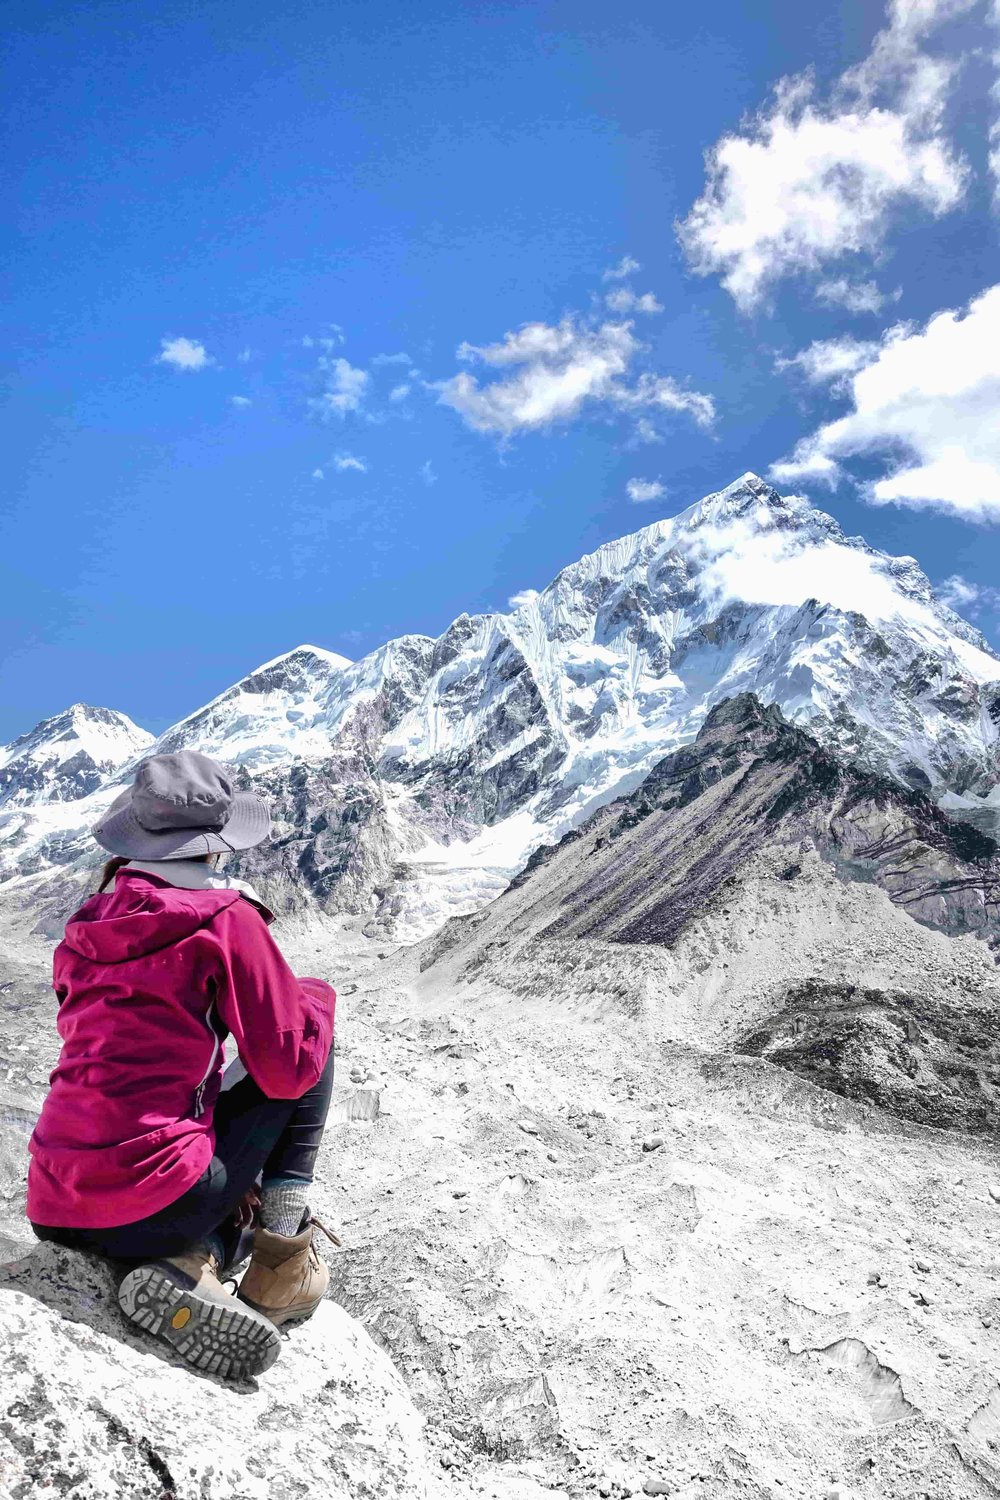 Everest Base Camp - Trek to the base camp of the world's tallest mountain